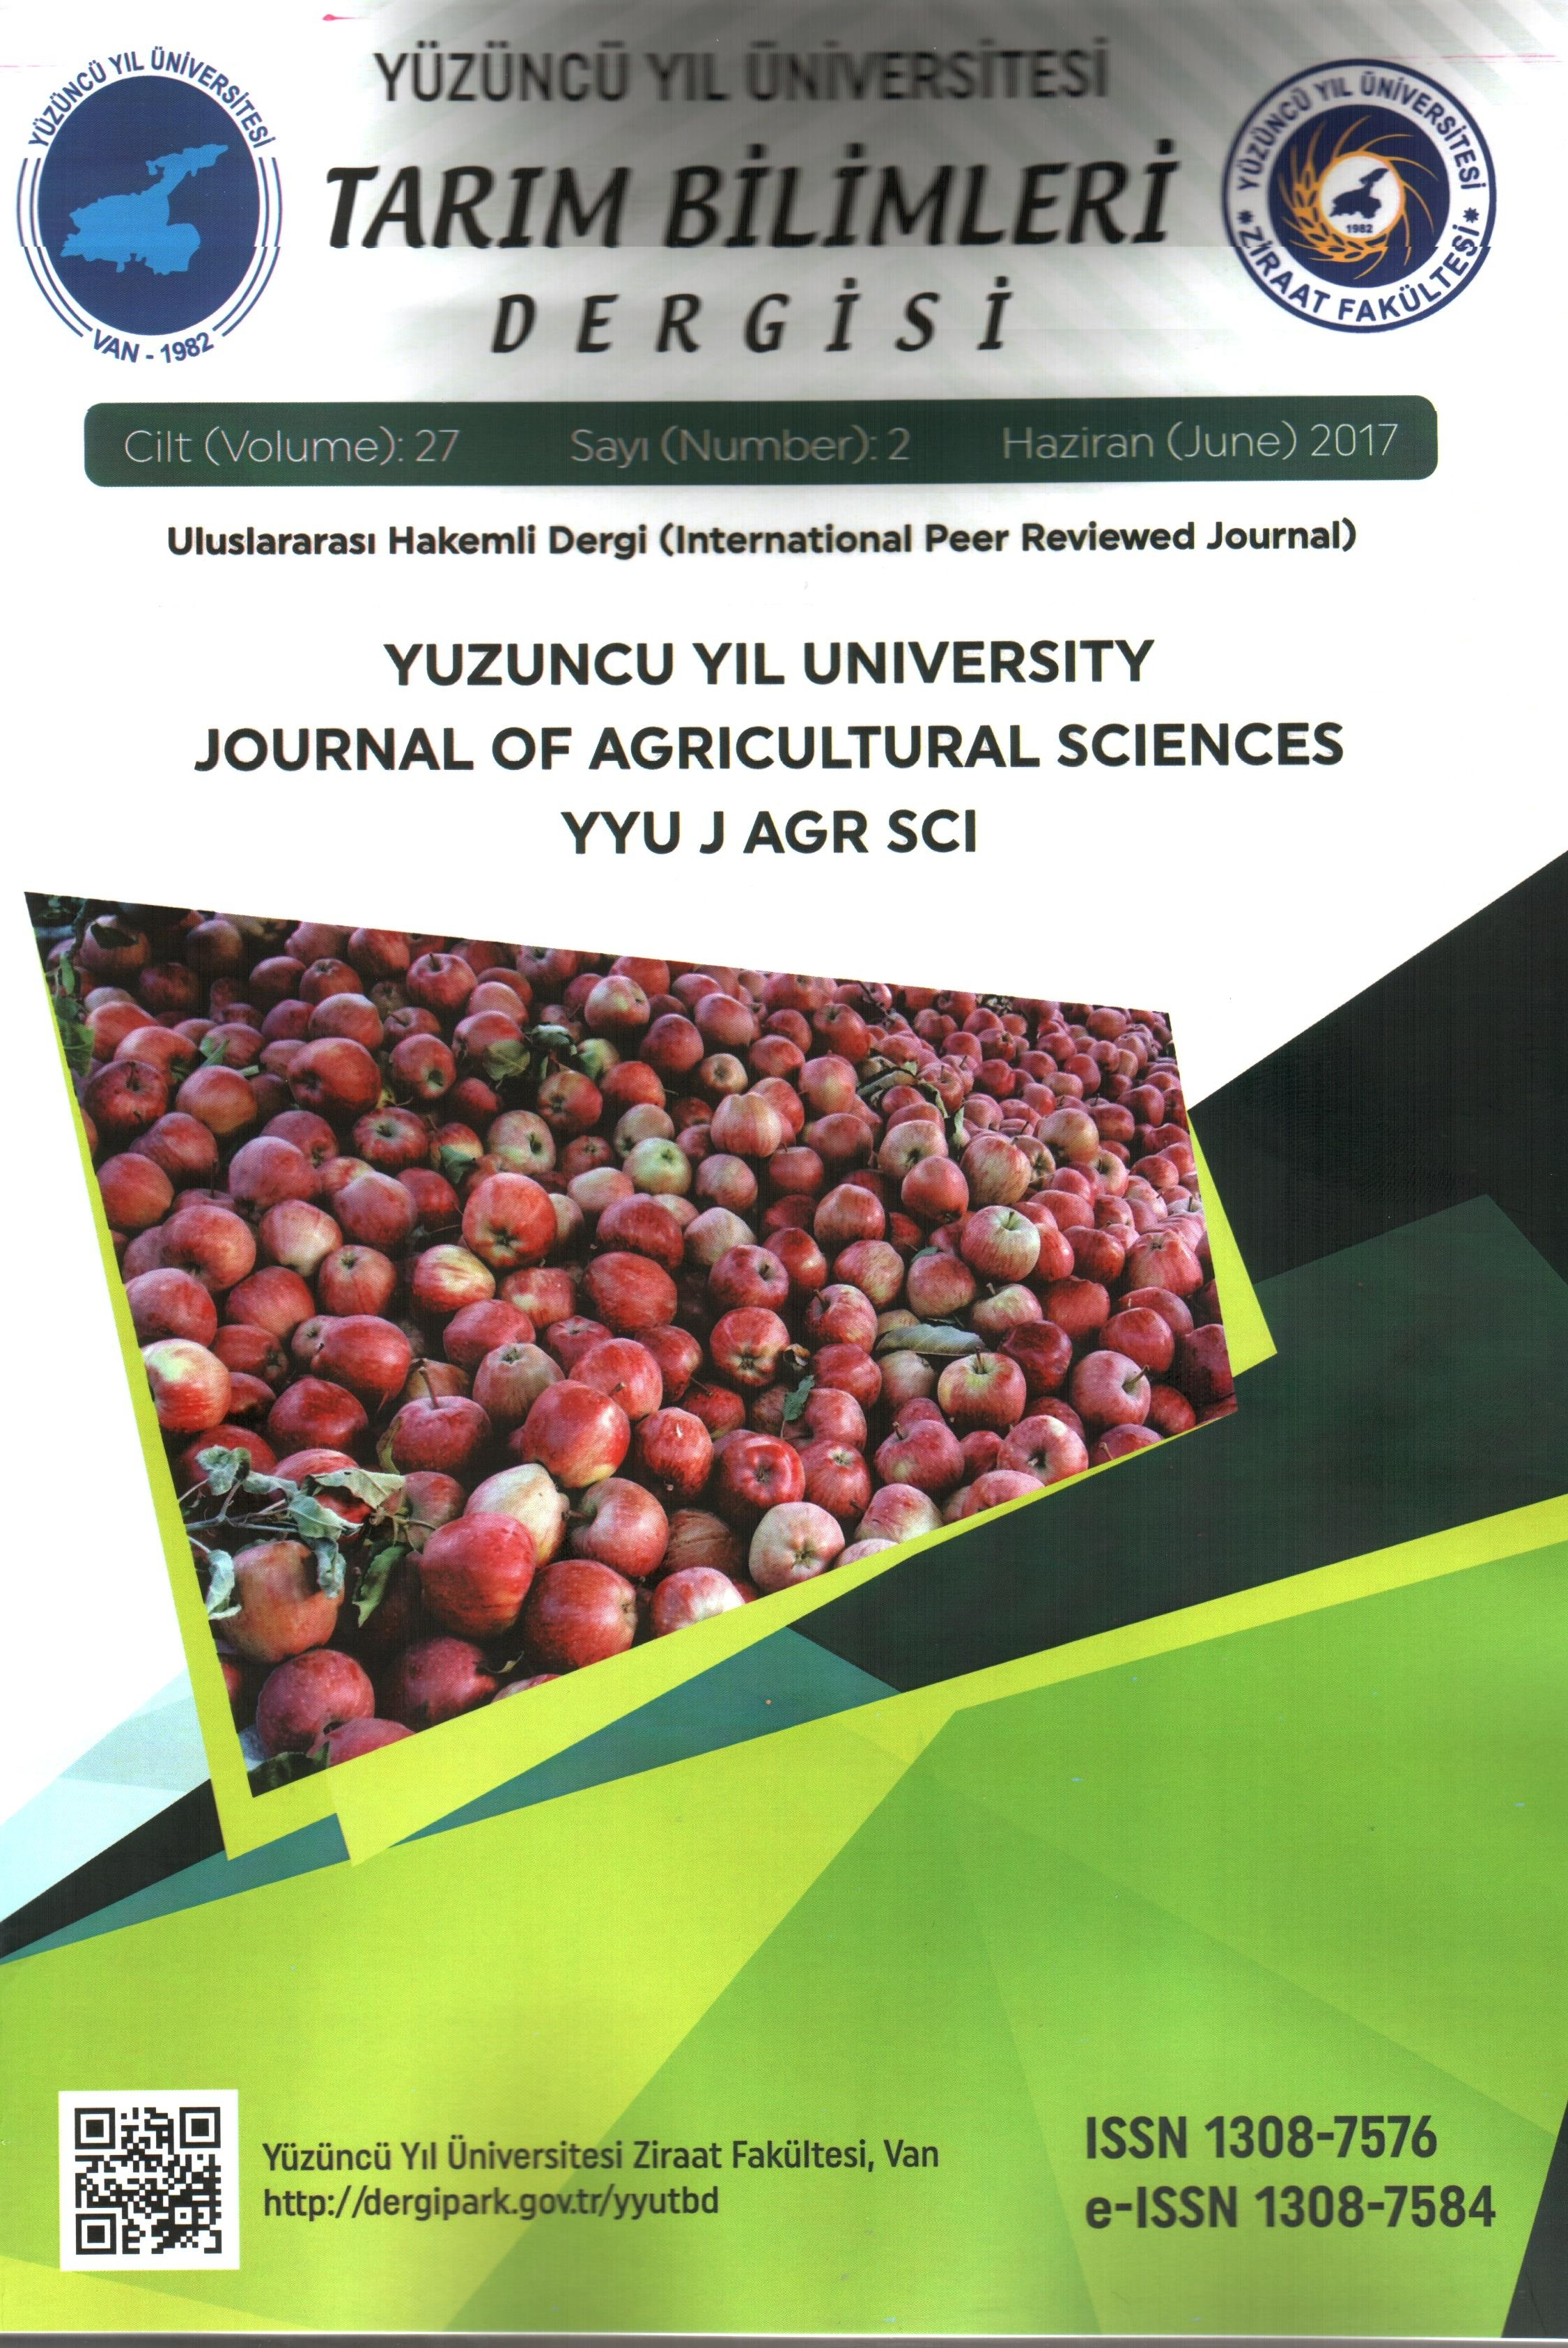 Yuzuncu Yıl University Journal of Agricultural Sciences